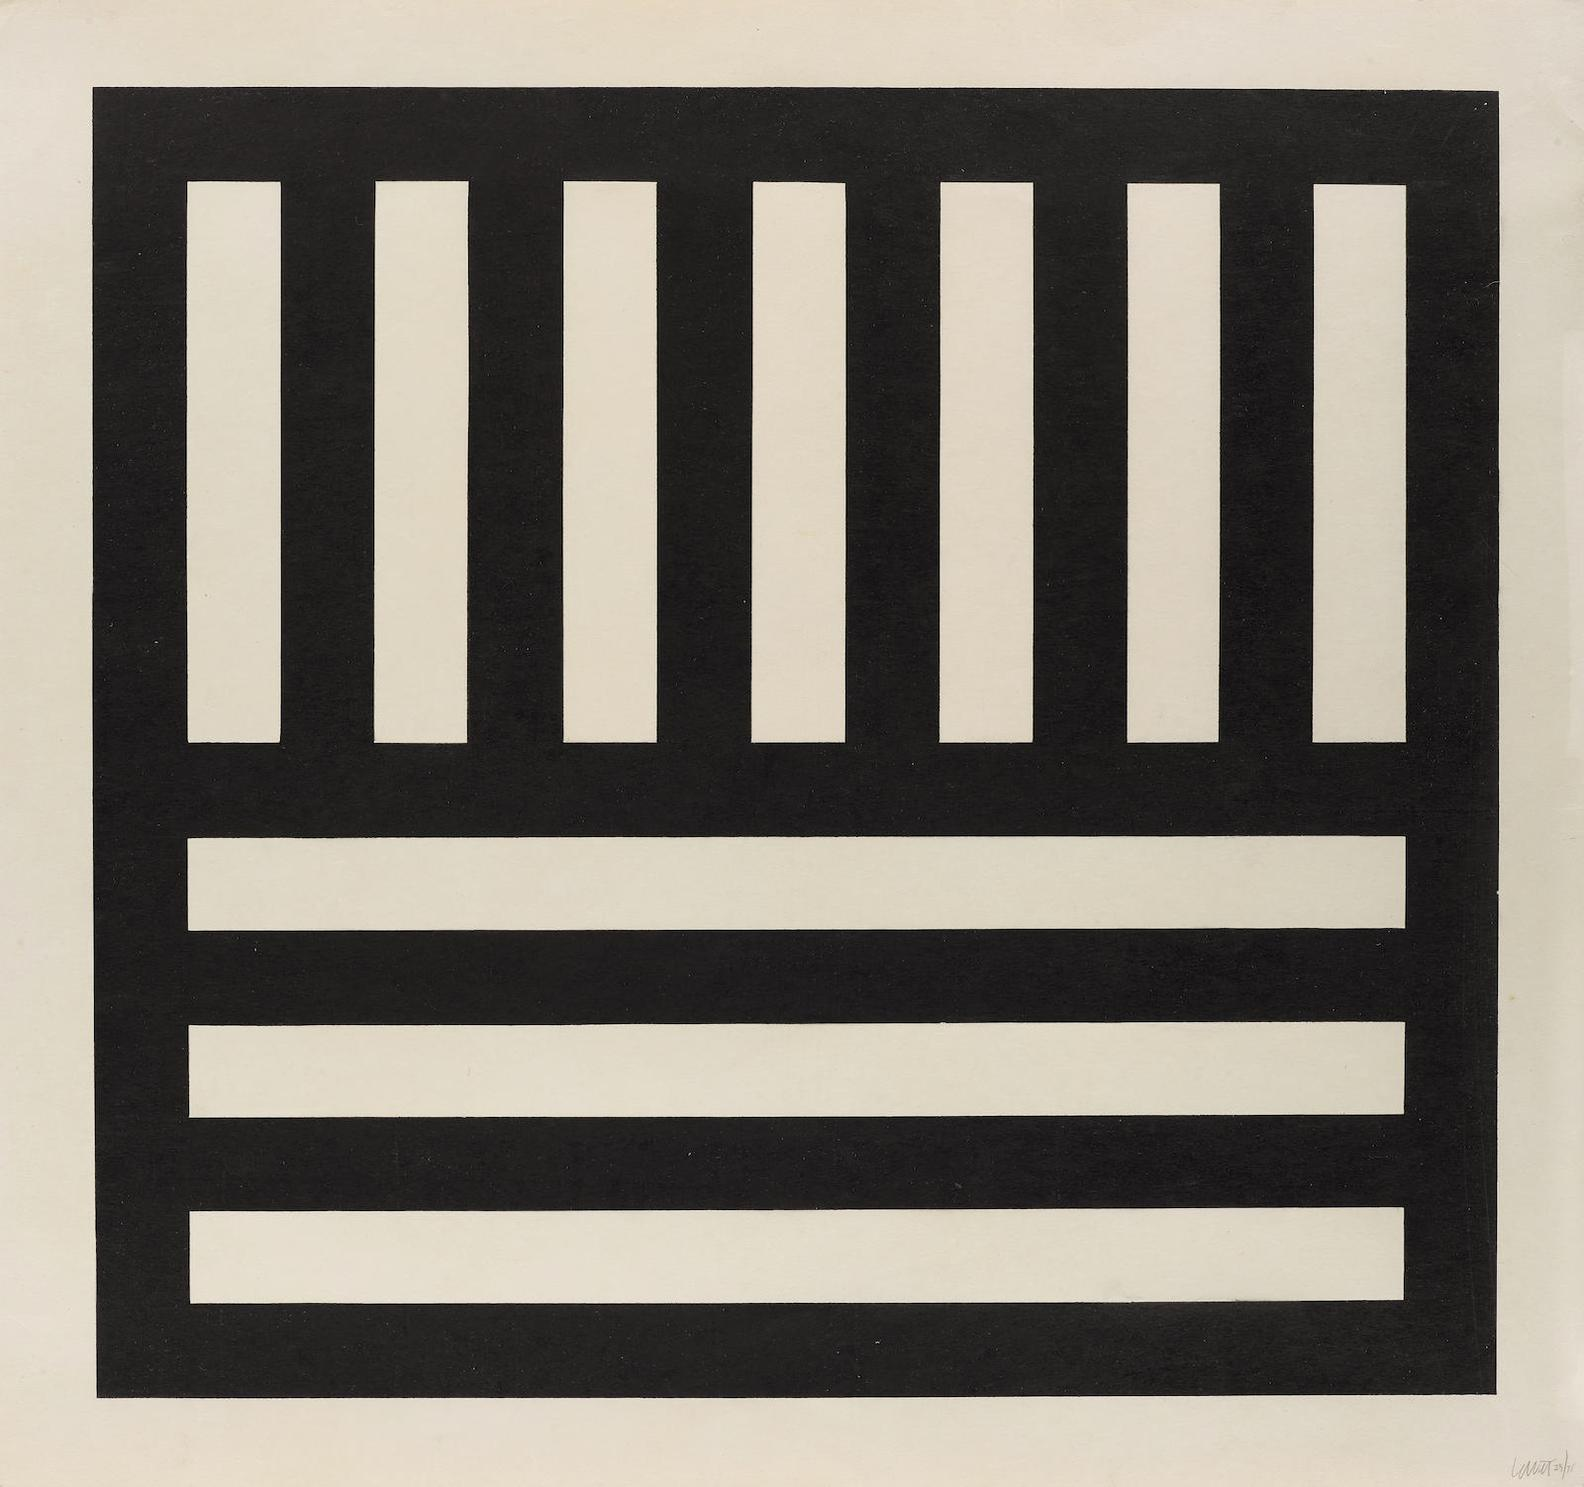 Sol LeWitt-Black Blands In Two Directions; From Brooklyn Academy Of Music Artists Print Portfolio III [B.A.M. III]-1991